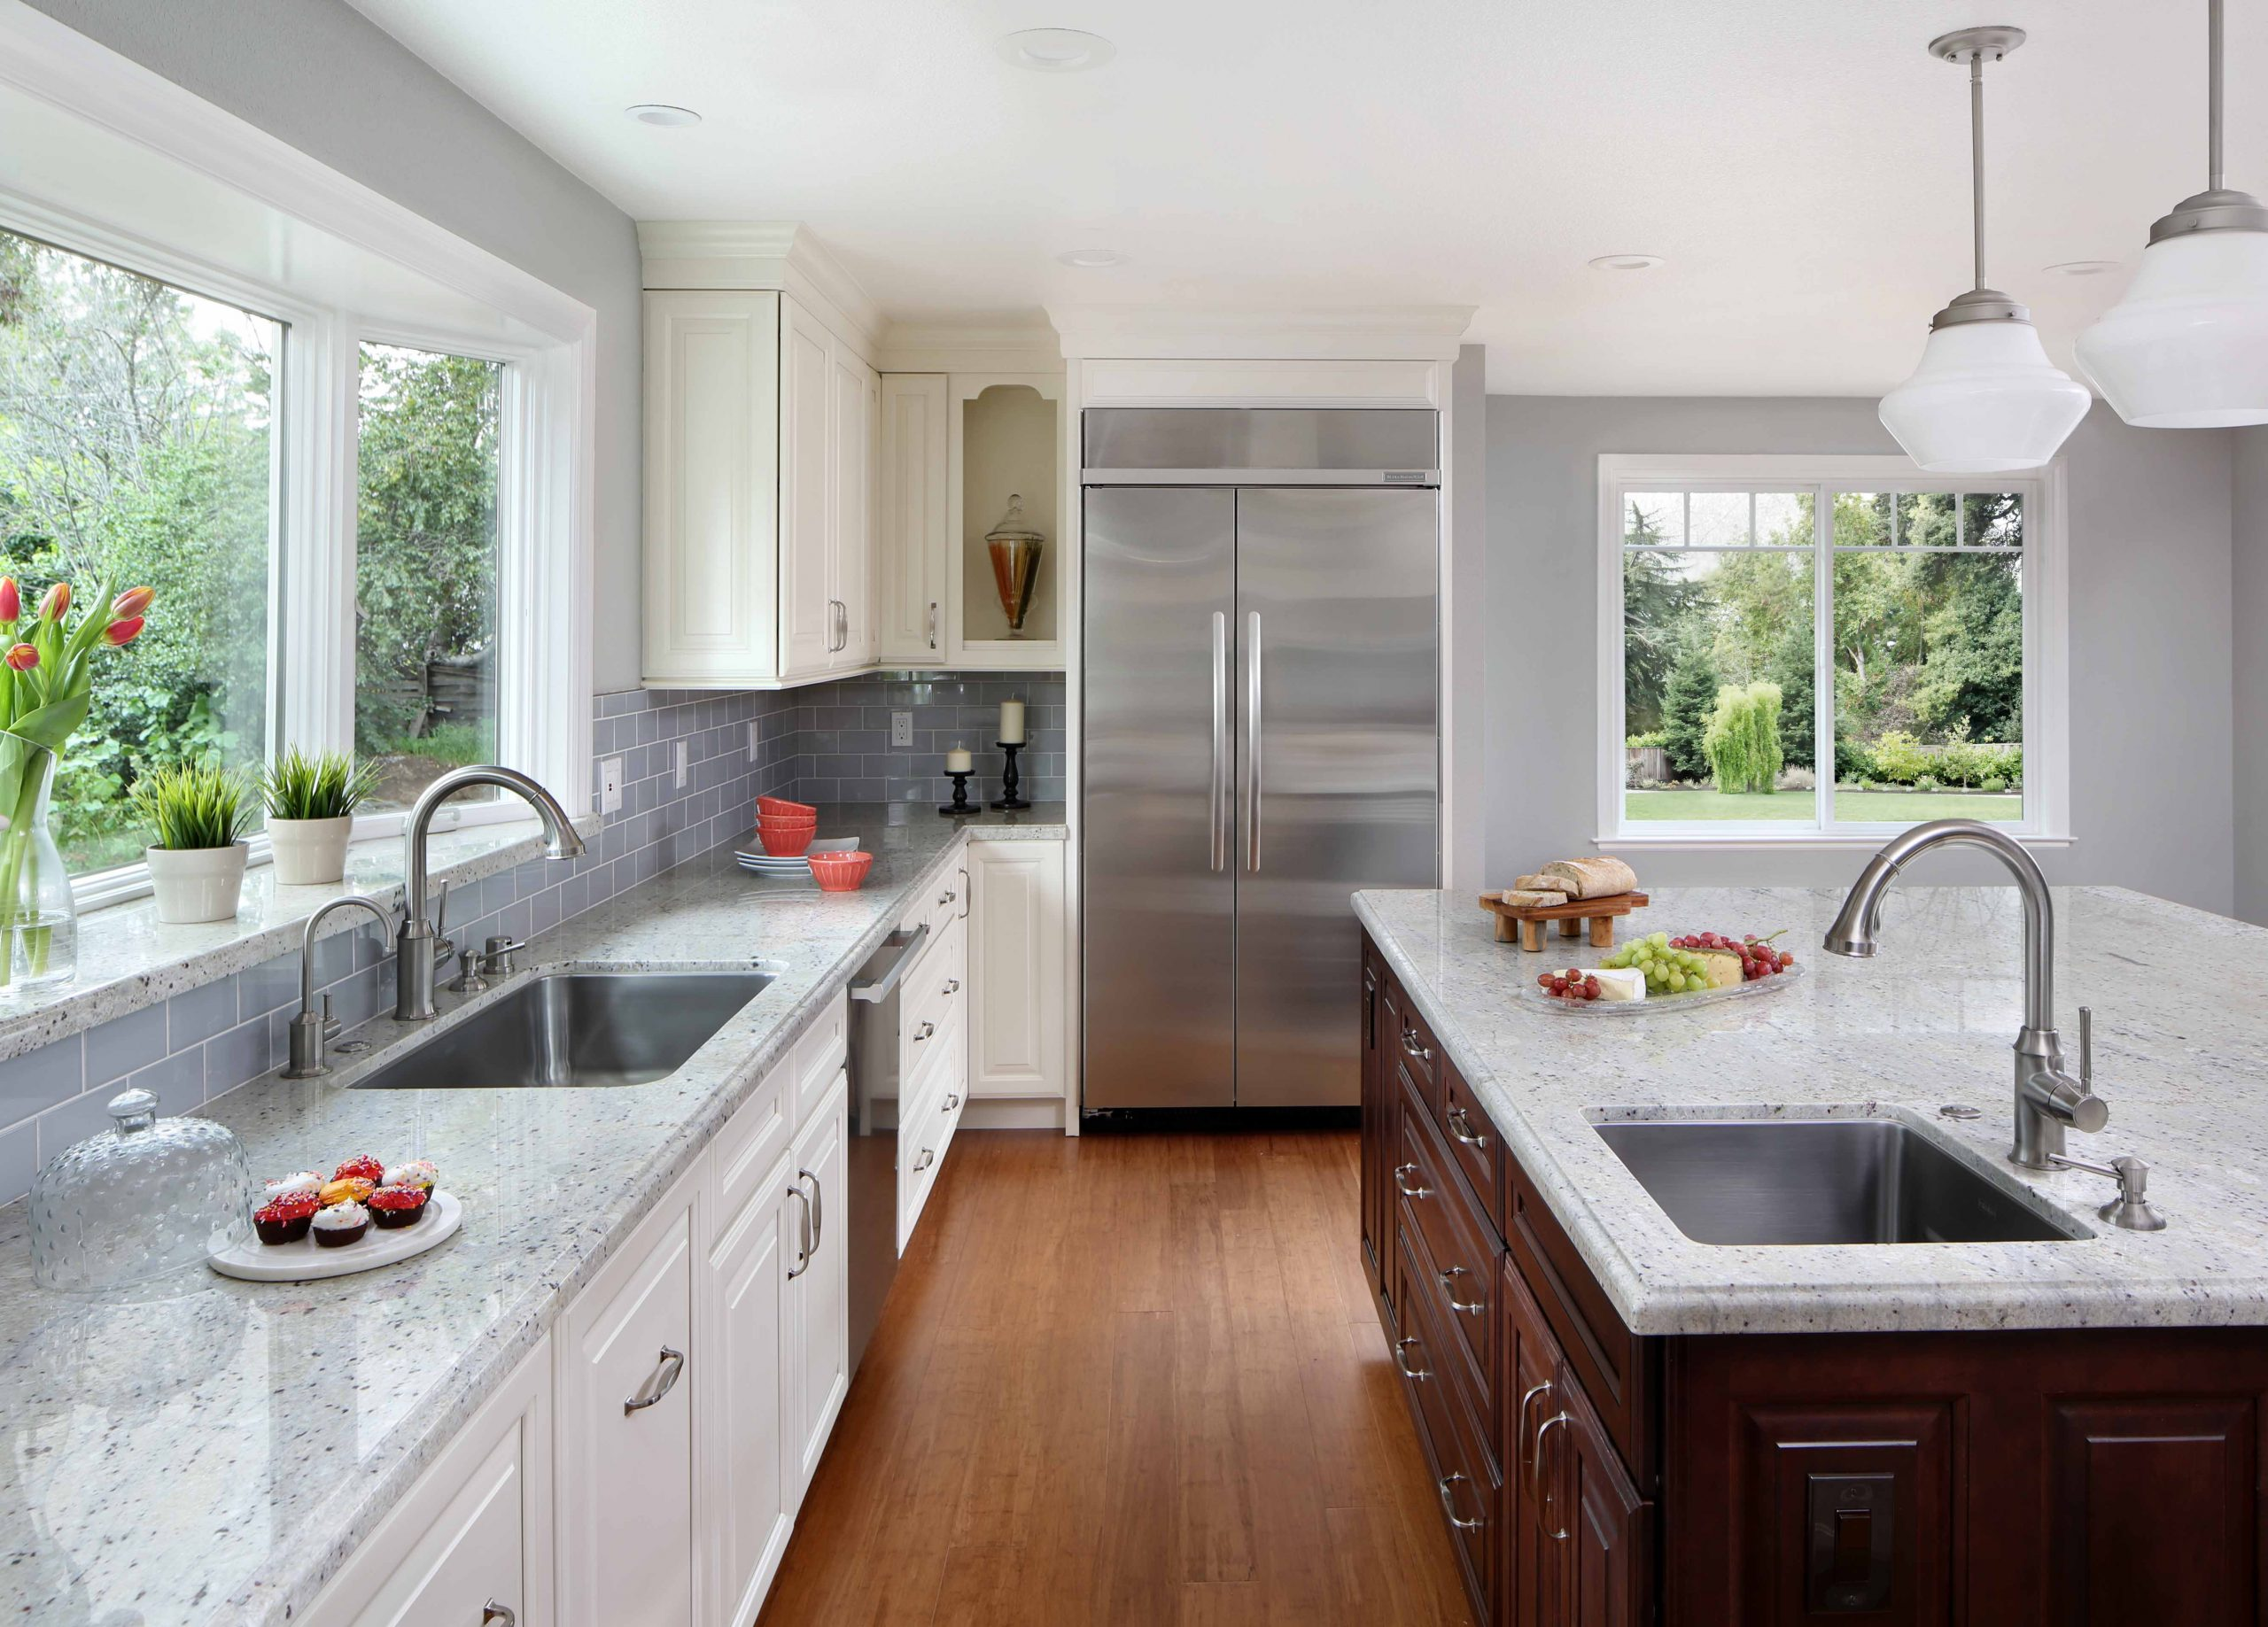 A brand new kitchen with two sinks.